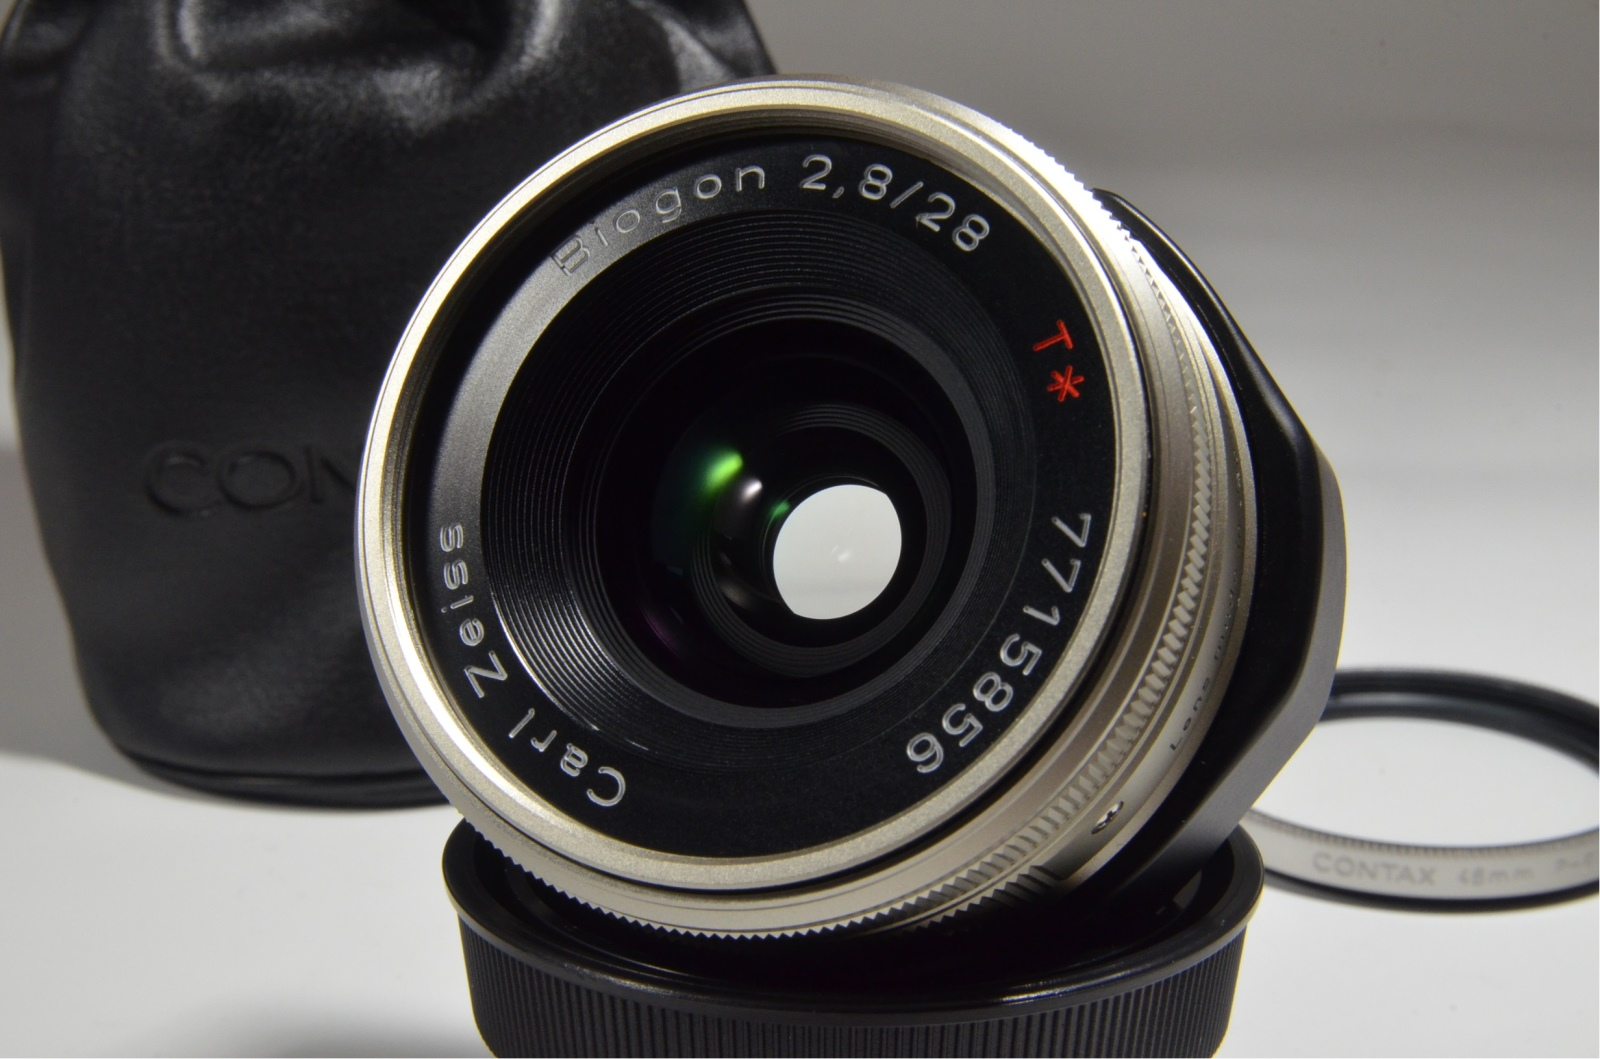 contax g2 with full case, planar 45mm f2, biogon 28mm f2.8, sonnar 90mm f2.8, tla200